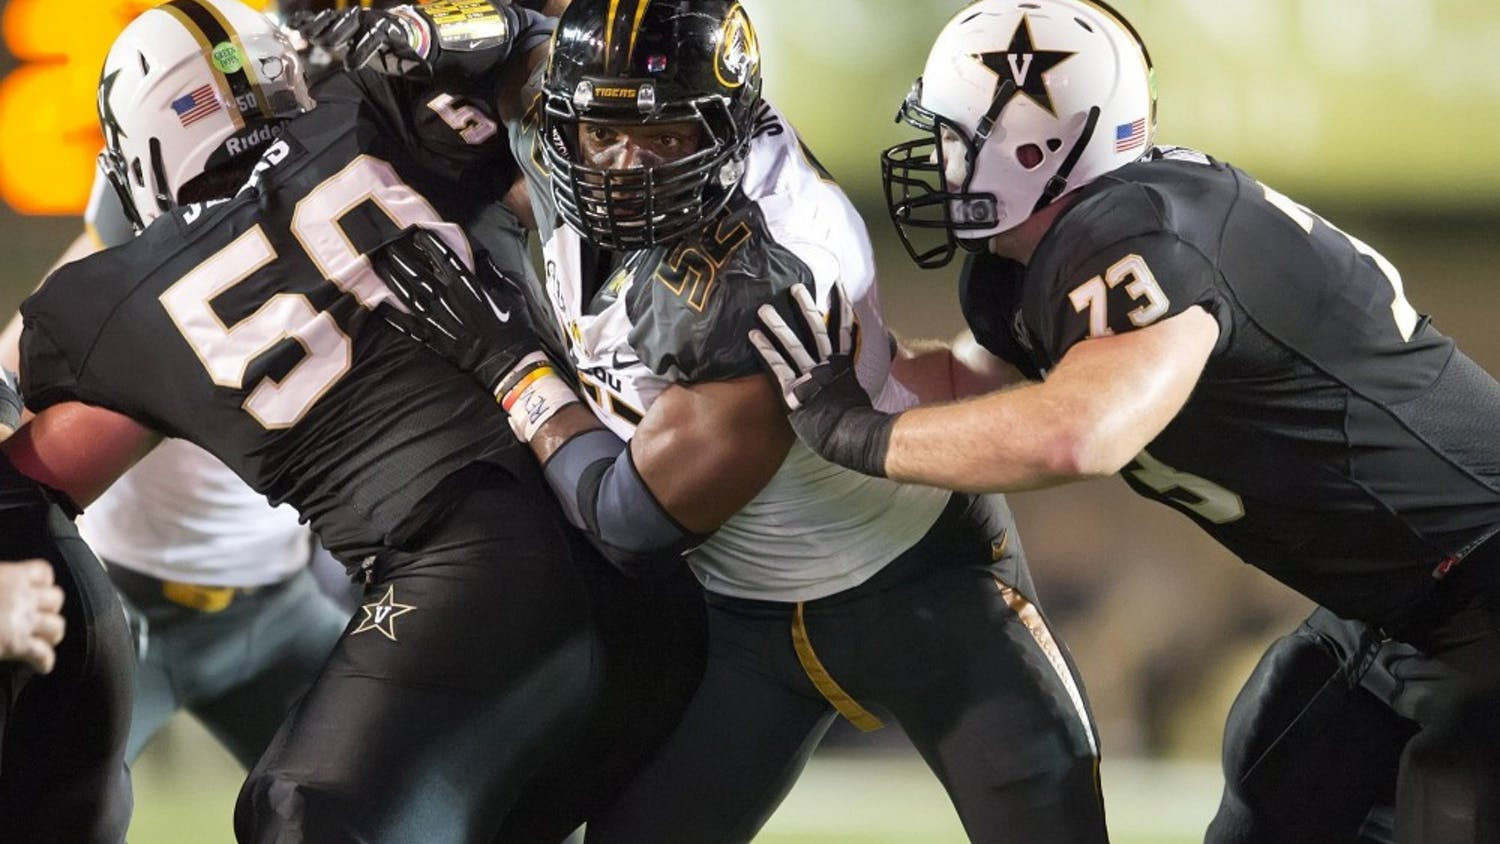 Missouri Tigers defensive lineman Michael Sam, center, on Sunday, Feb. 9, 2014, became the most prominent, and apparently the first, active male athlete on the major U.S. sports scene to publicly disclose that he's gay. Sam is seen during a college football game against Vanderbilt in this October 5, 2013, file photo. (David Eulitt/Kansas City Star/MCT)